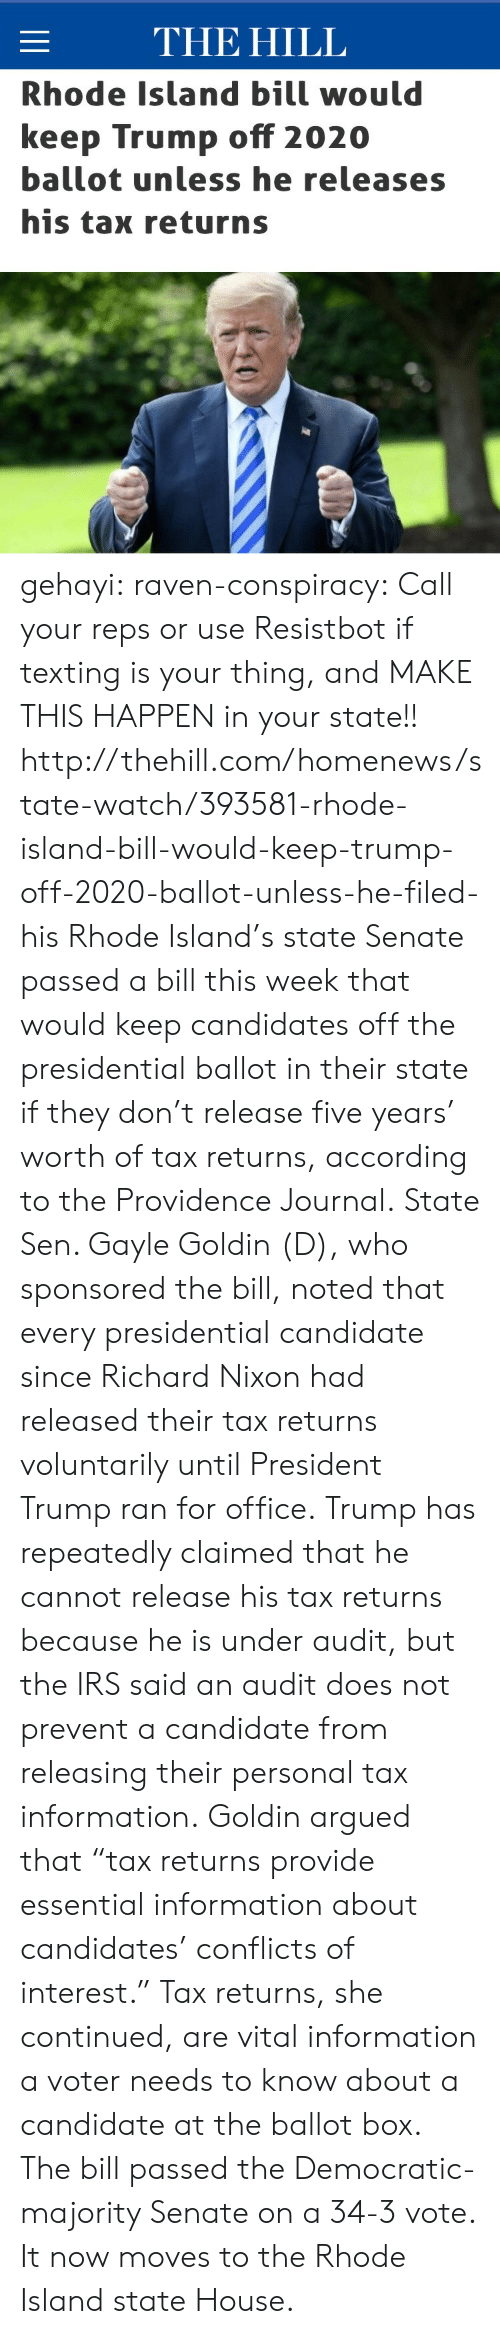 """Donald Trump, Irs, and News: THE HILL  Rhode Island bill would  keep Trump off 2020  ballot unless he releases  his tax returns gehayi:  raven-conspiracy:  Call your reps or use Resistbot if texting is your thing, and MAKE THIS HAPPEN in your state!!  http://thehill.com/homenews/state-watch/393581-rhode-island-bill-would-keep-trump-off-2020-ballot-unless-he-filed-his   Rhode Island's state Senate passed a bill this week that would keep candidates off the presidential ballot in their state if they don't release five years' worth of tax returns, according to the Providence Journal. State Sen. Gayle Goldin (D), who sponsored the bill, noted that every presidential candidate since Richard Nixon had released their tax returns voluntarily until President Trump ran for office. Trump has repeatedly claimed that he cannot release his tax returns because he is under audit, but the IRS said anaudit does not prevent a candidatefrom releasing their personal tax information. Goldin argued that """"tax returns provide essential information about candidates' conflicts of interest."""" Tax returns, she continued, are vital information a voter needs to know about a candidate at the ballot box. The bill passed the Democratic-majority Senate on a 34-3 vote. It now moves to the Rhode Island state House."""